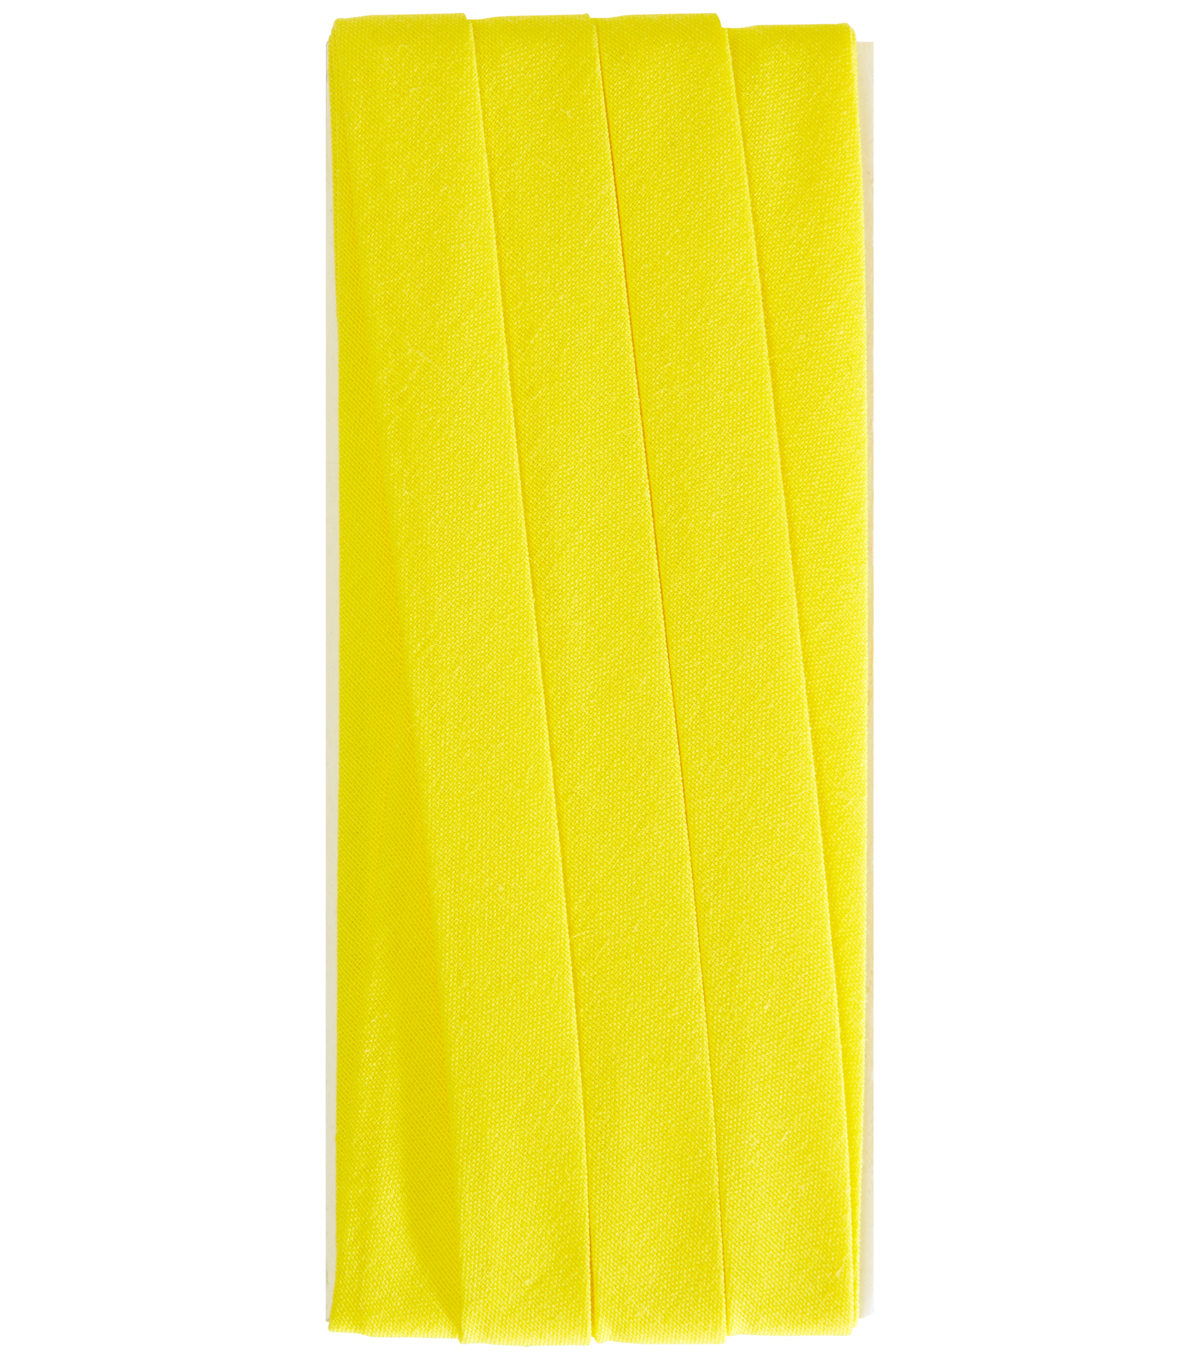 Wrights Extra Wide Double Fold Bias Tape, Cnry